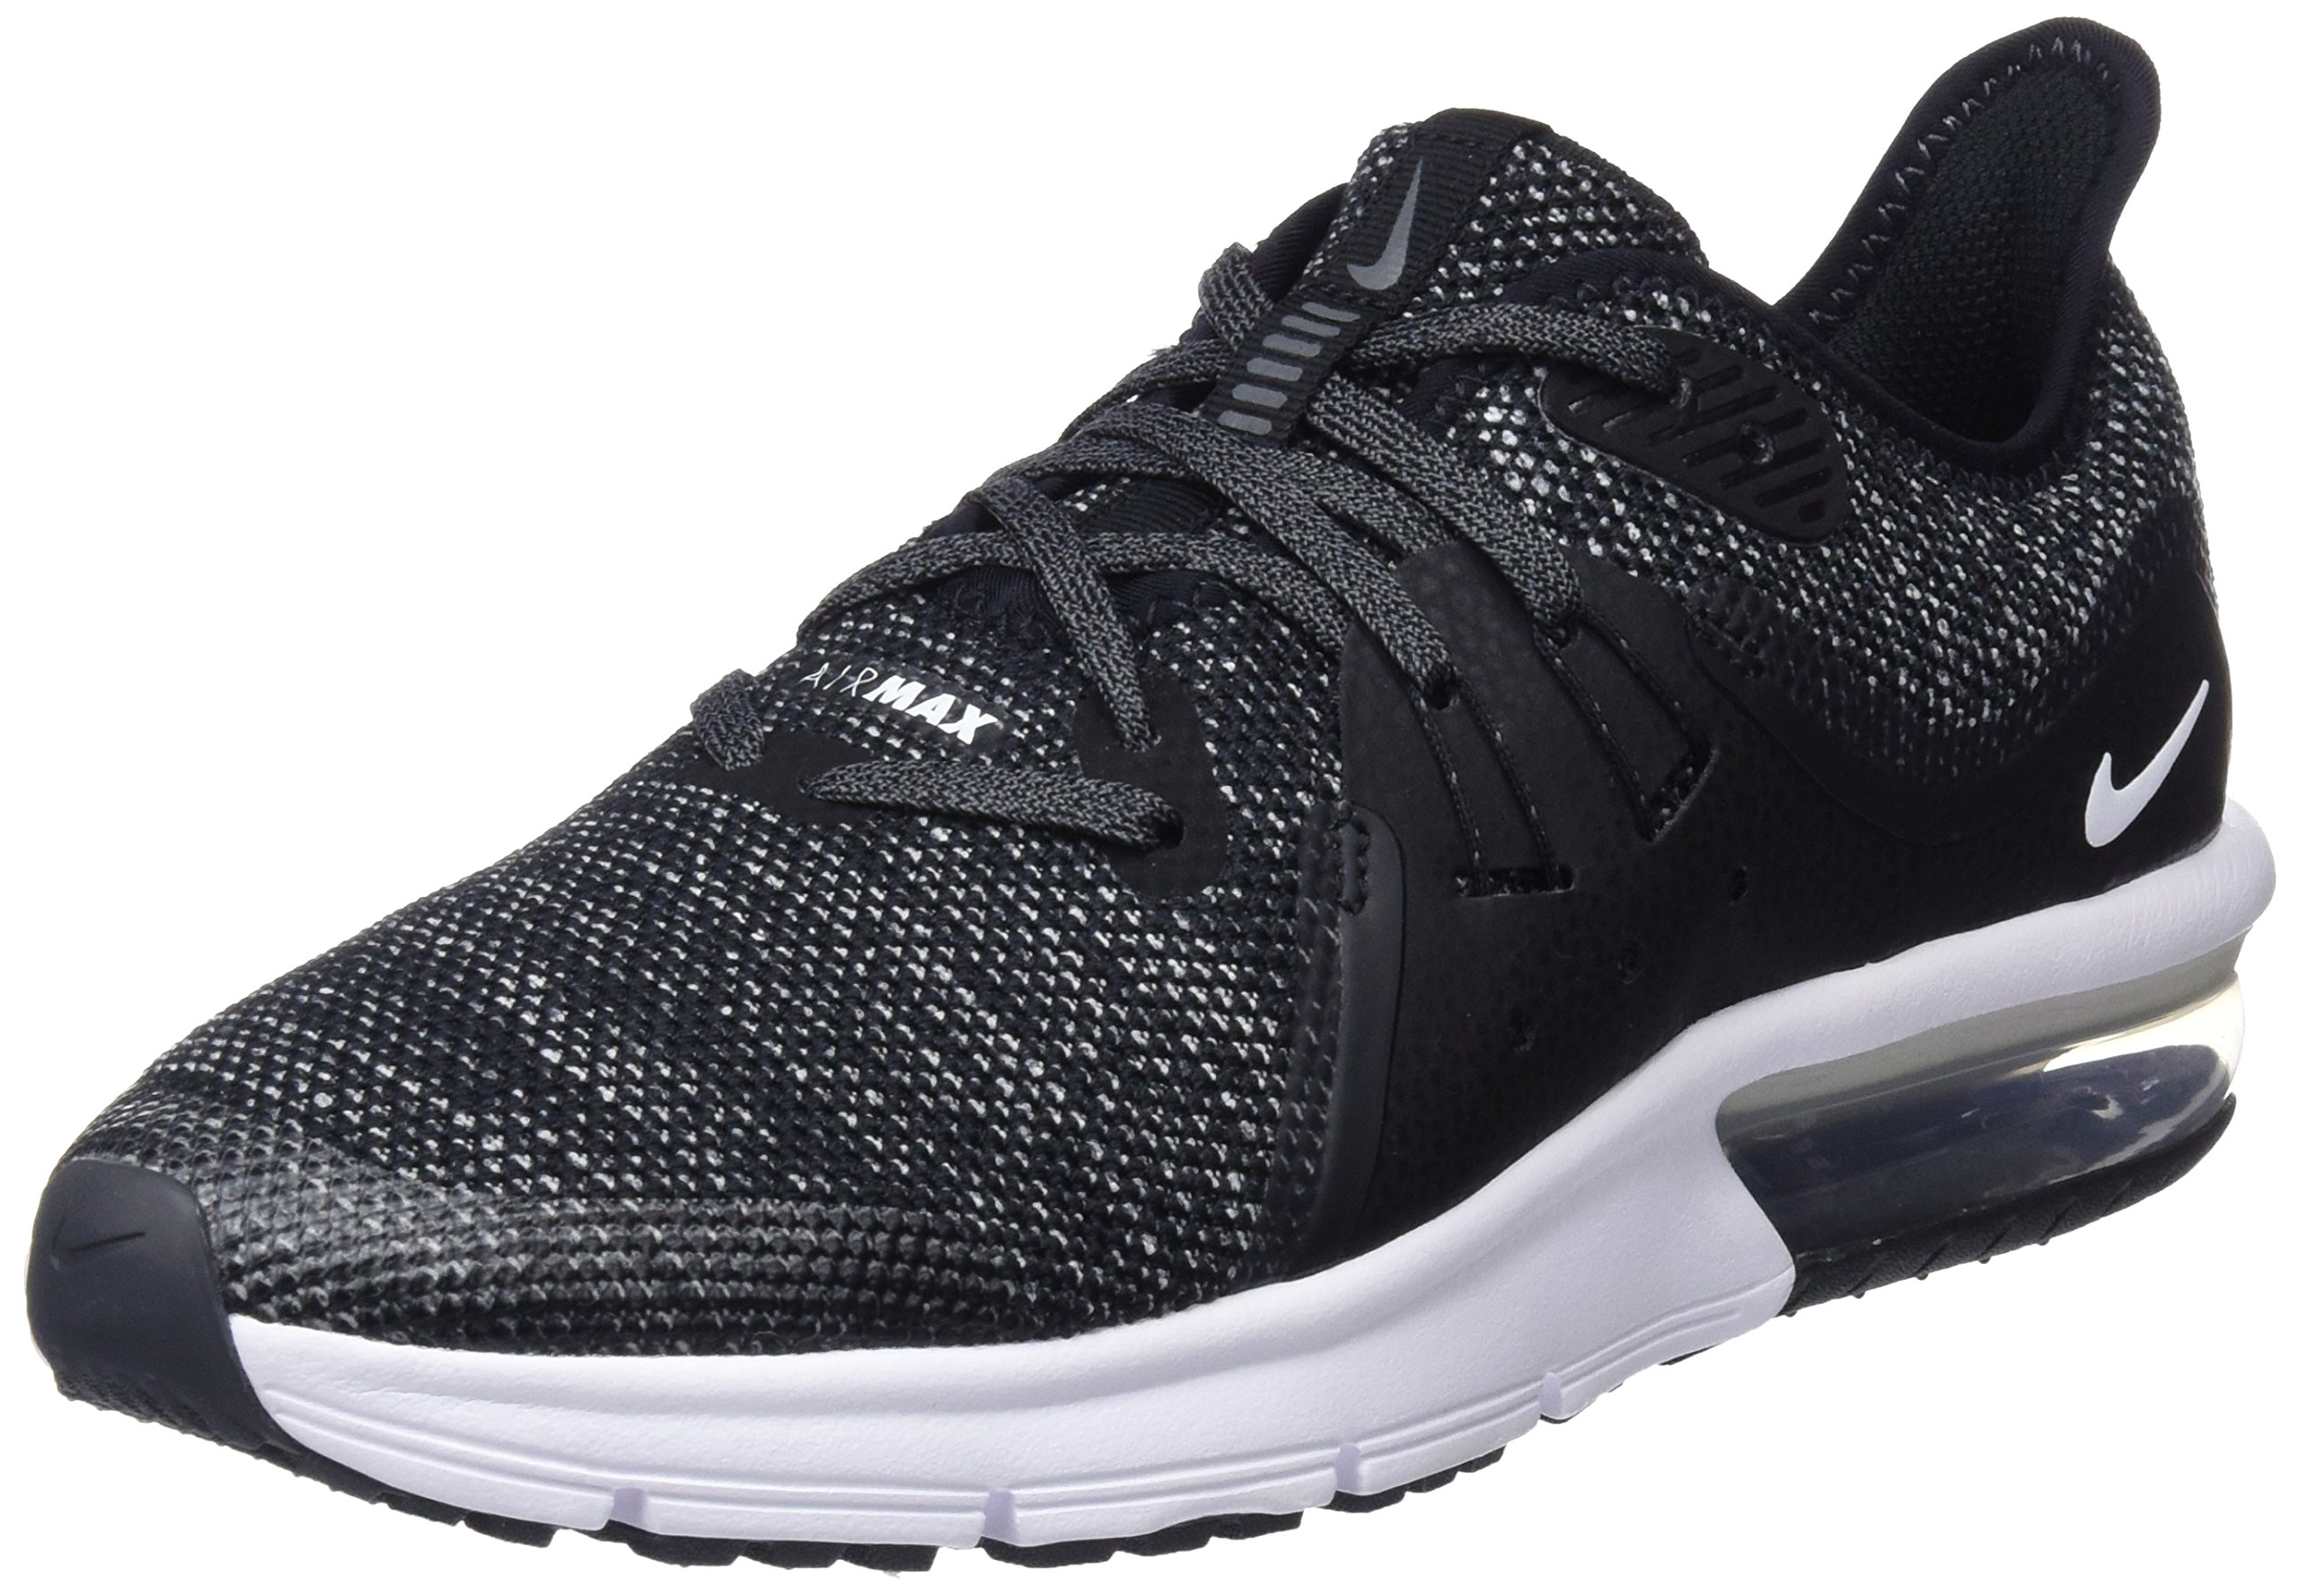 Nike Boy's Air Max Sequent 3 Running Shoe Black/White/Dark Grey Size 3.5 M US by Nike (Image #1)